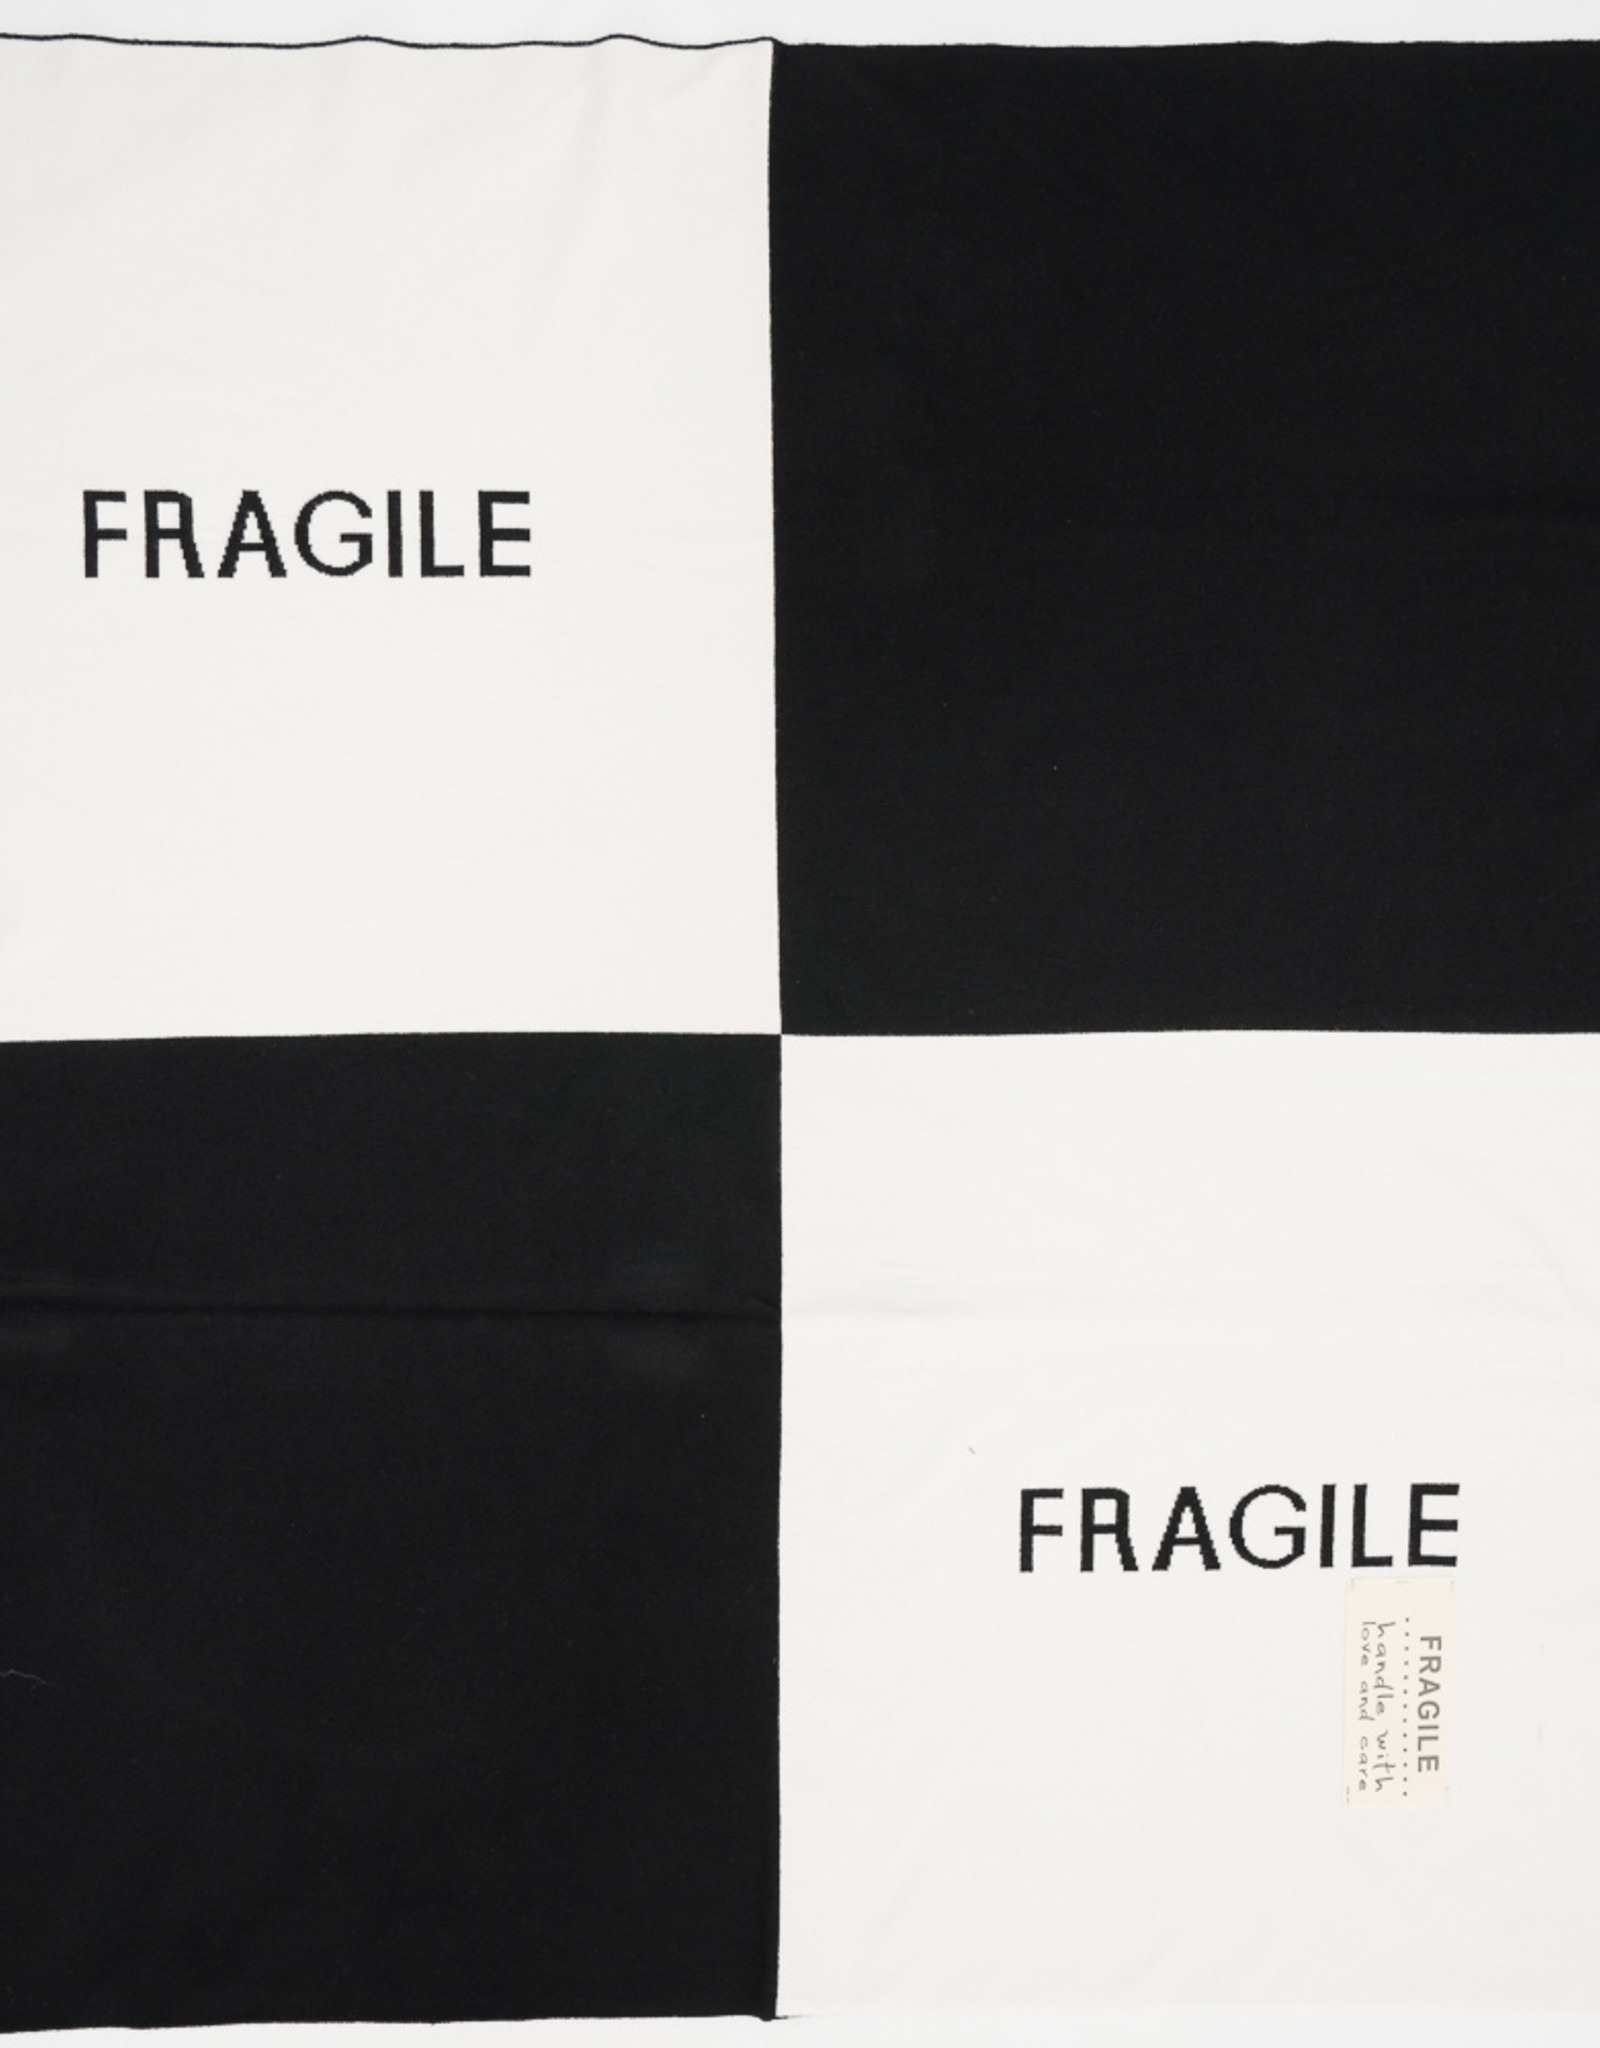 FRAGILE Fragile Knit Colorblock 'FRAGILE' Baby Blanket